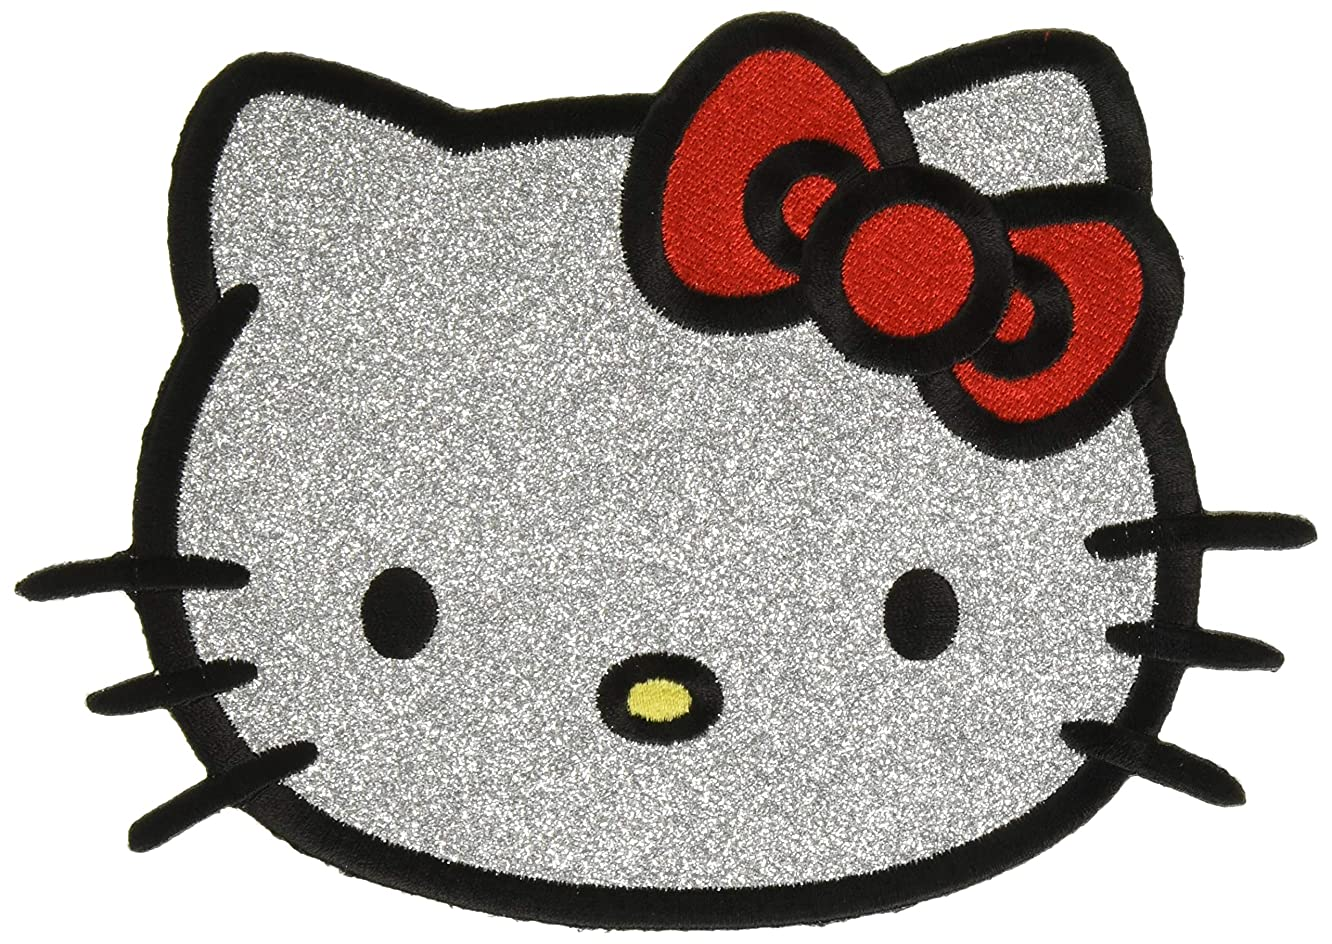 C&D Visionary Hello Kitty Headshot in Glitter Back Patch Iron-On Patches (P-HK-0032-G)